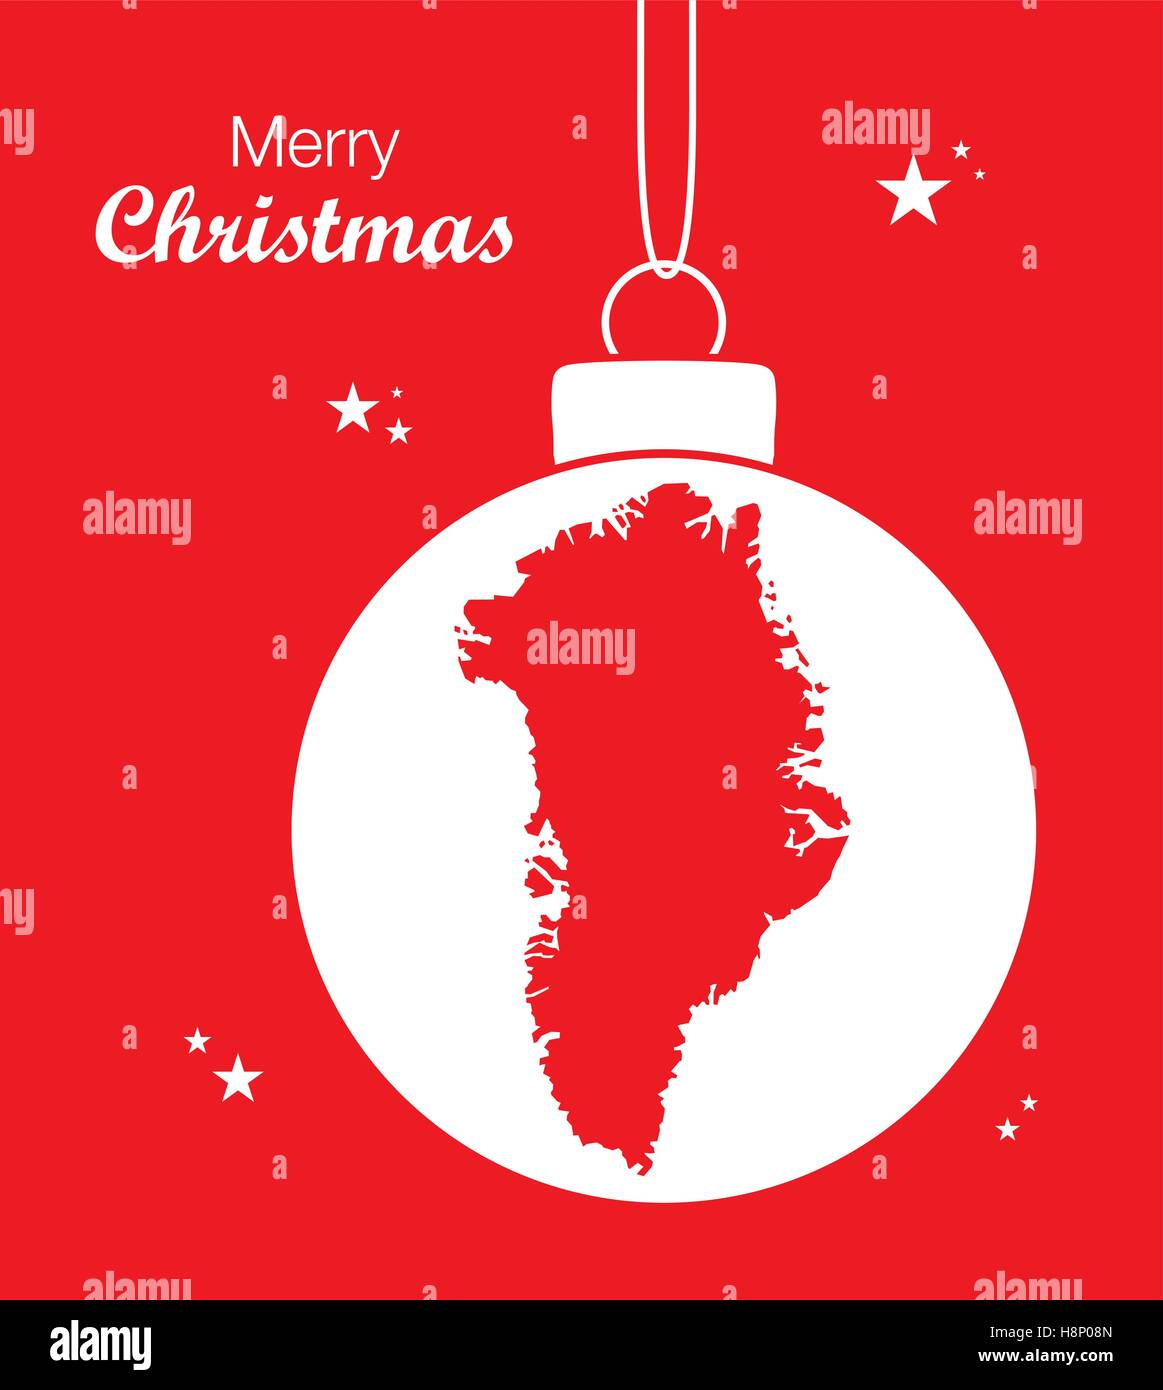 Christmas In Greenland.Merry Christmas Illustration Theme With Map Of Greenland